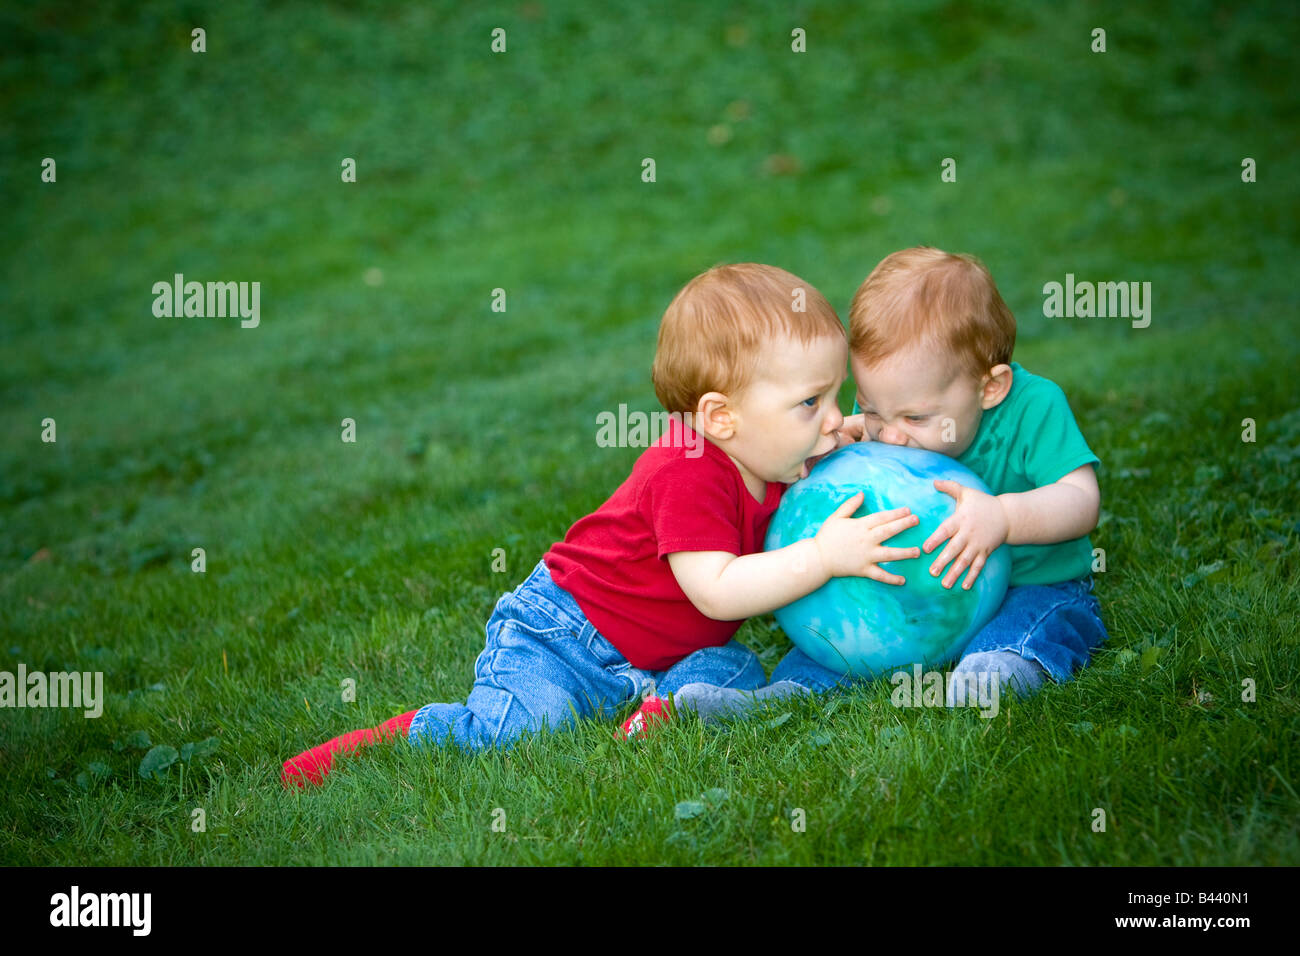 Young redheaded baby boys sitting outside on grass playing with ball - Stock Image